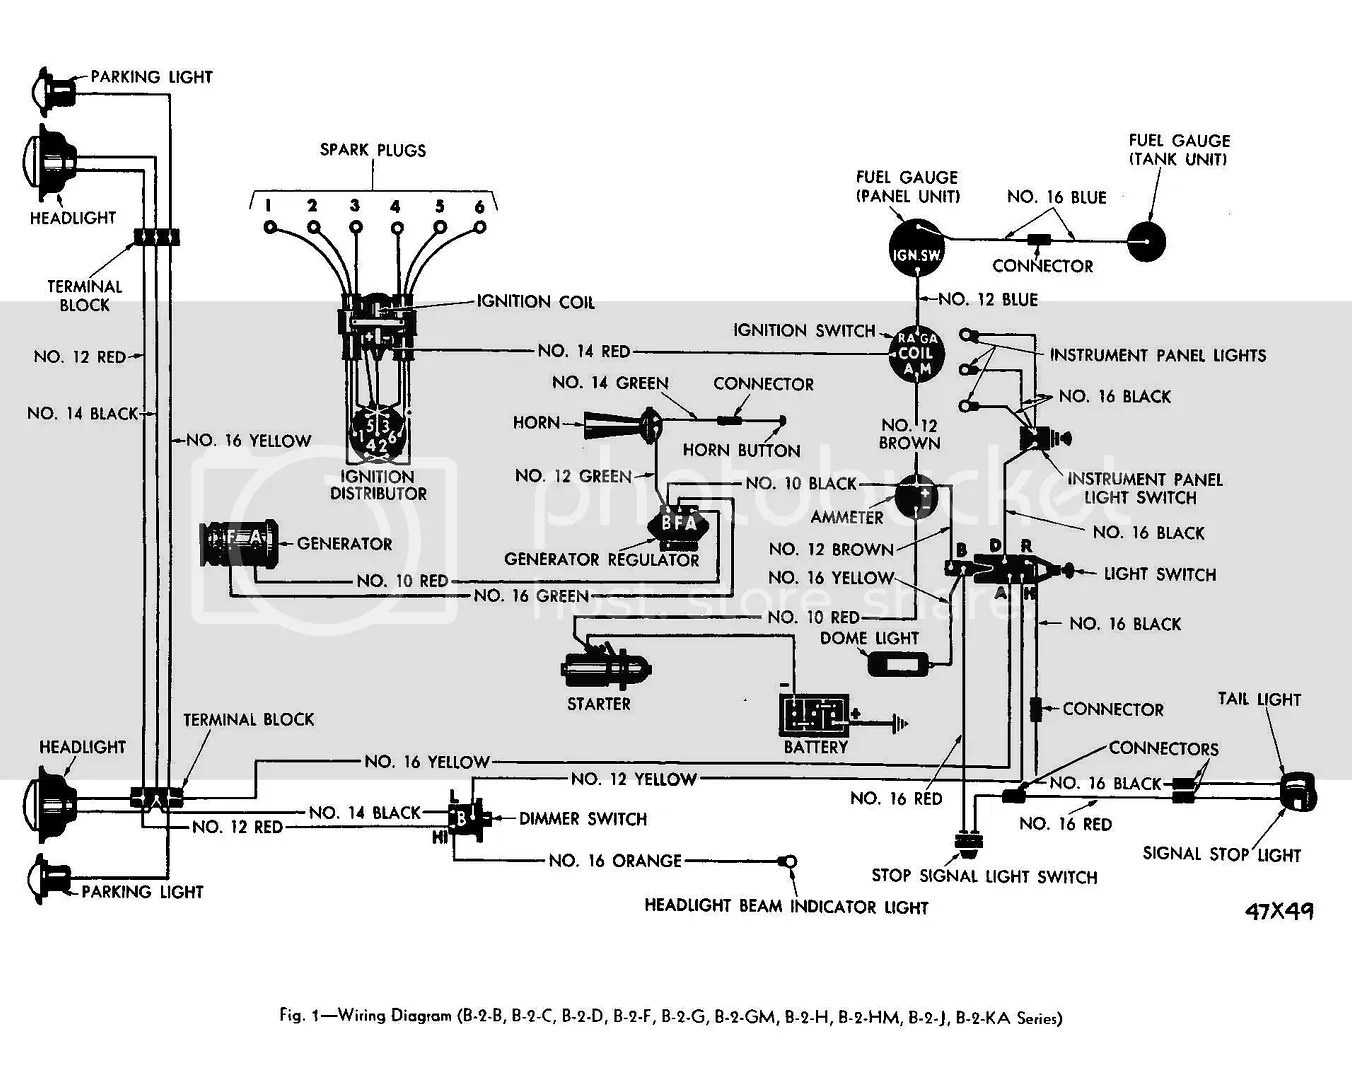 1950 Dodge Pickup Wiring Diagram